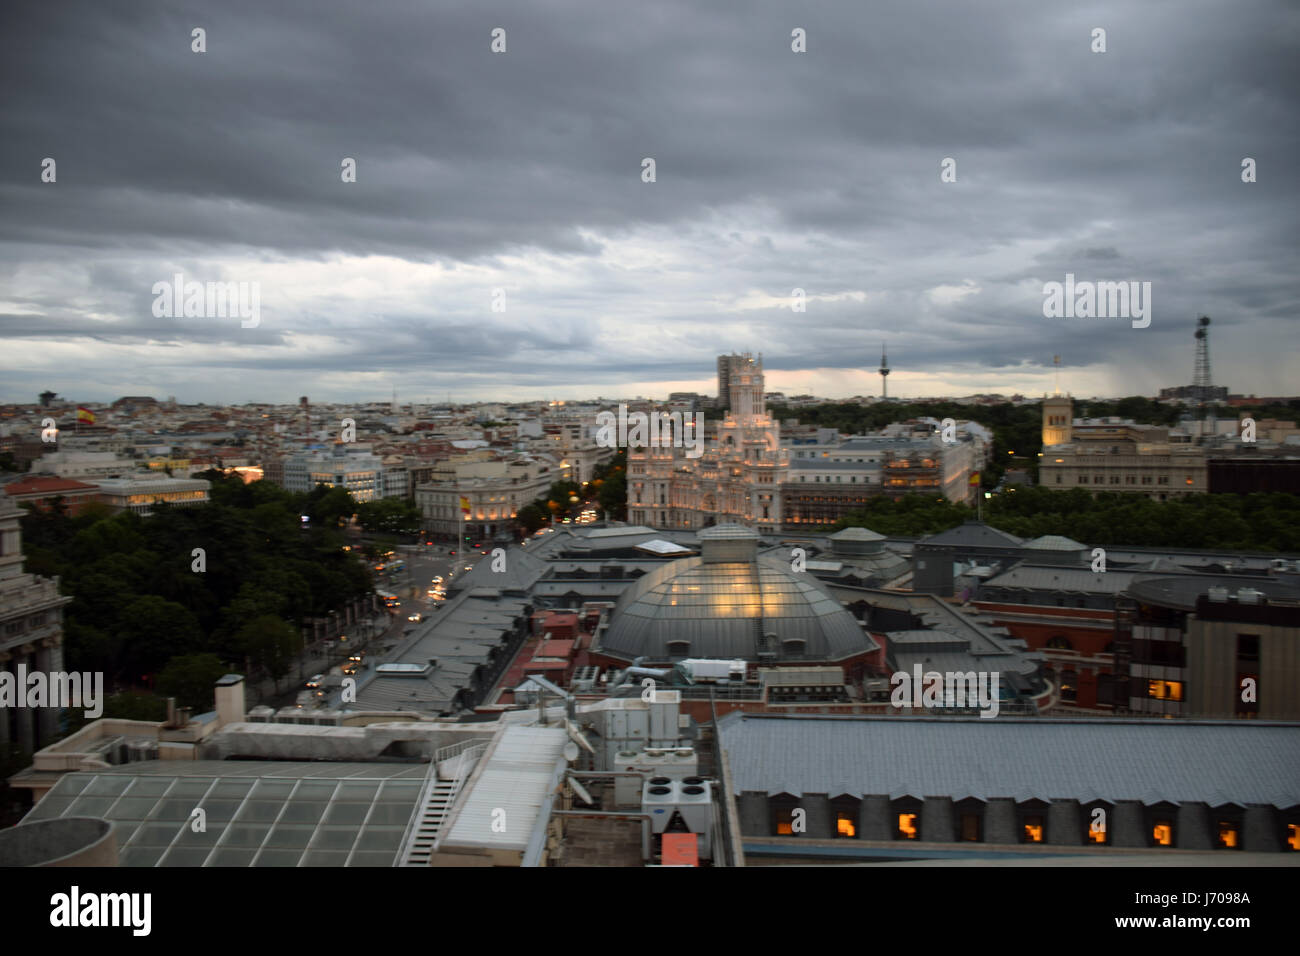 View from rooftop bar & restaurant, Tartan Roof on top of Circulo de Bellas Artes, Madrid, Spain - Stock Image